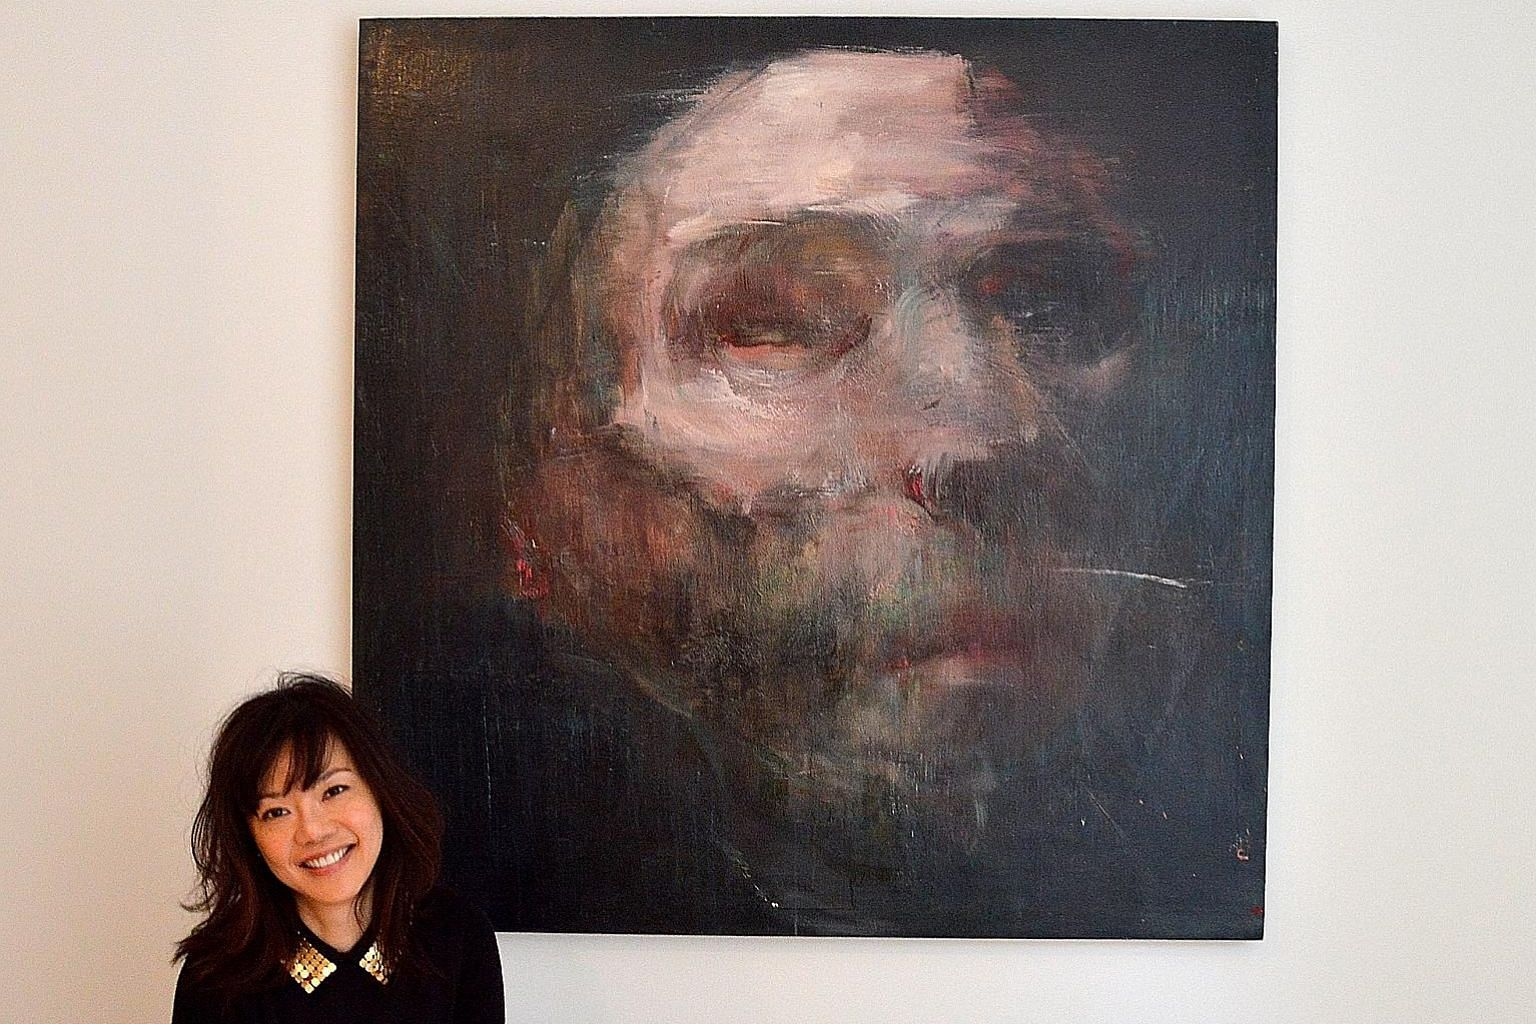 Ms Bee Tham's The Bee in the Lion gallery represents contemporary artists and produces interdisciplinary projects.